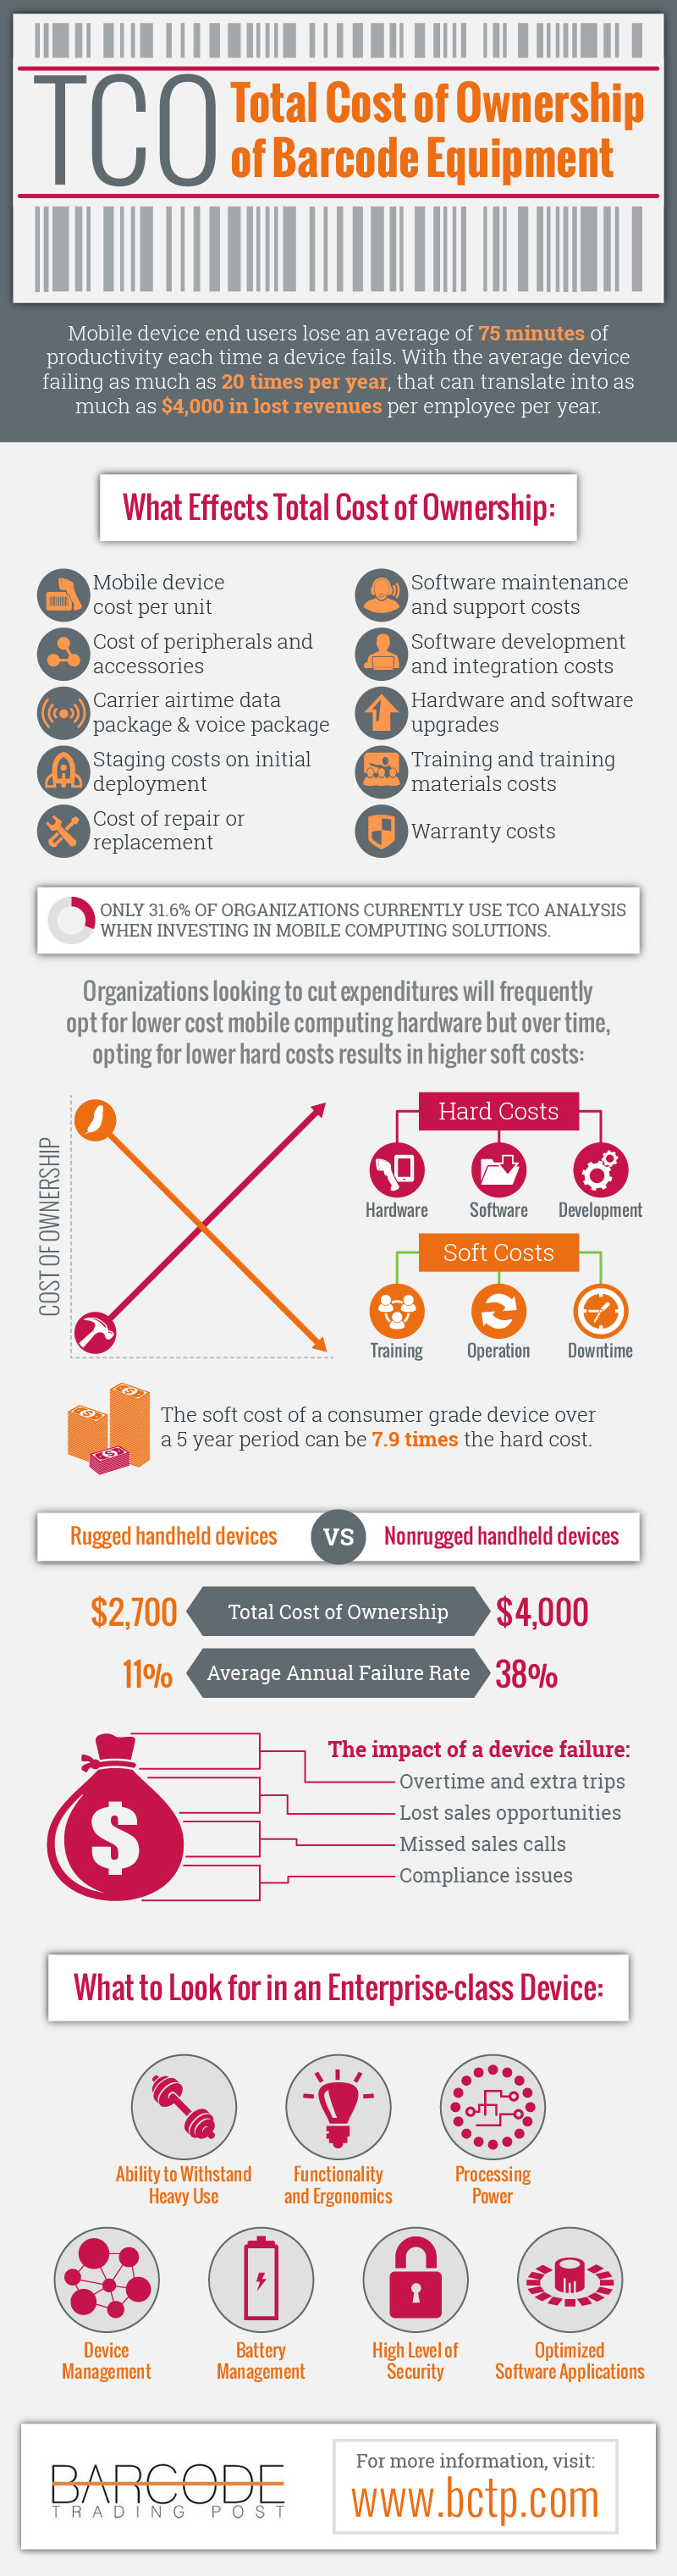 Barcode Equipment: Total Cost of Ownership